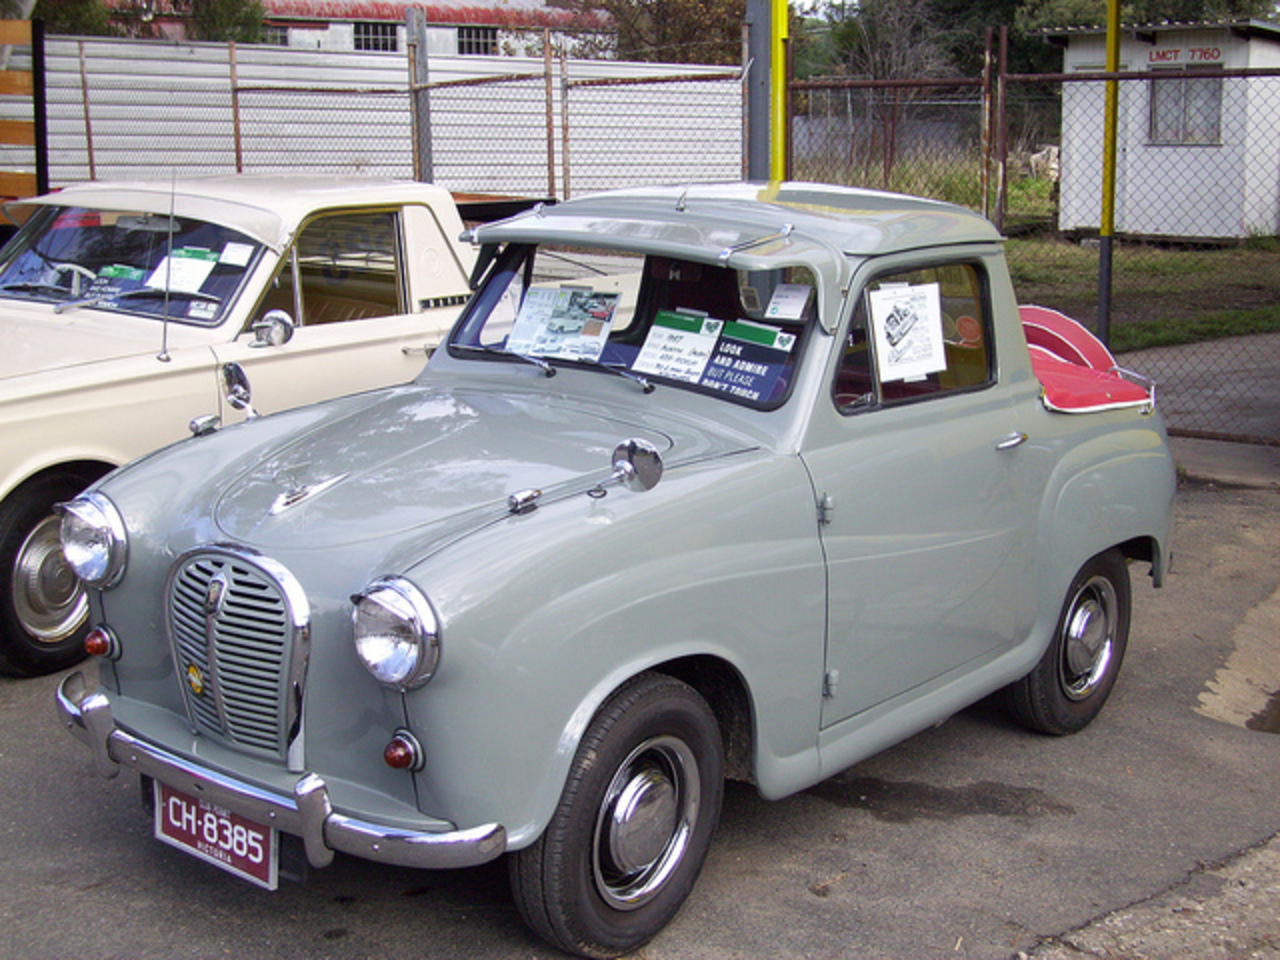 1954 Austin A30 Ute - Pickup | Flickr - Photo Sharing!